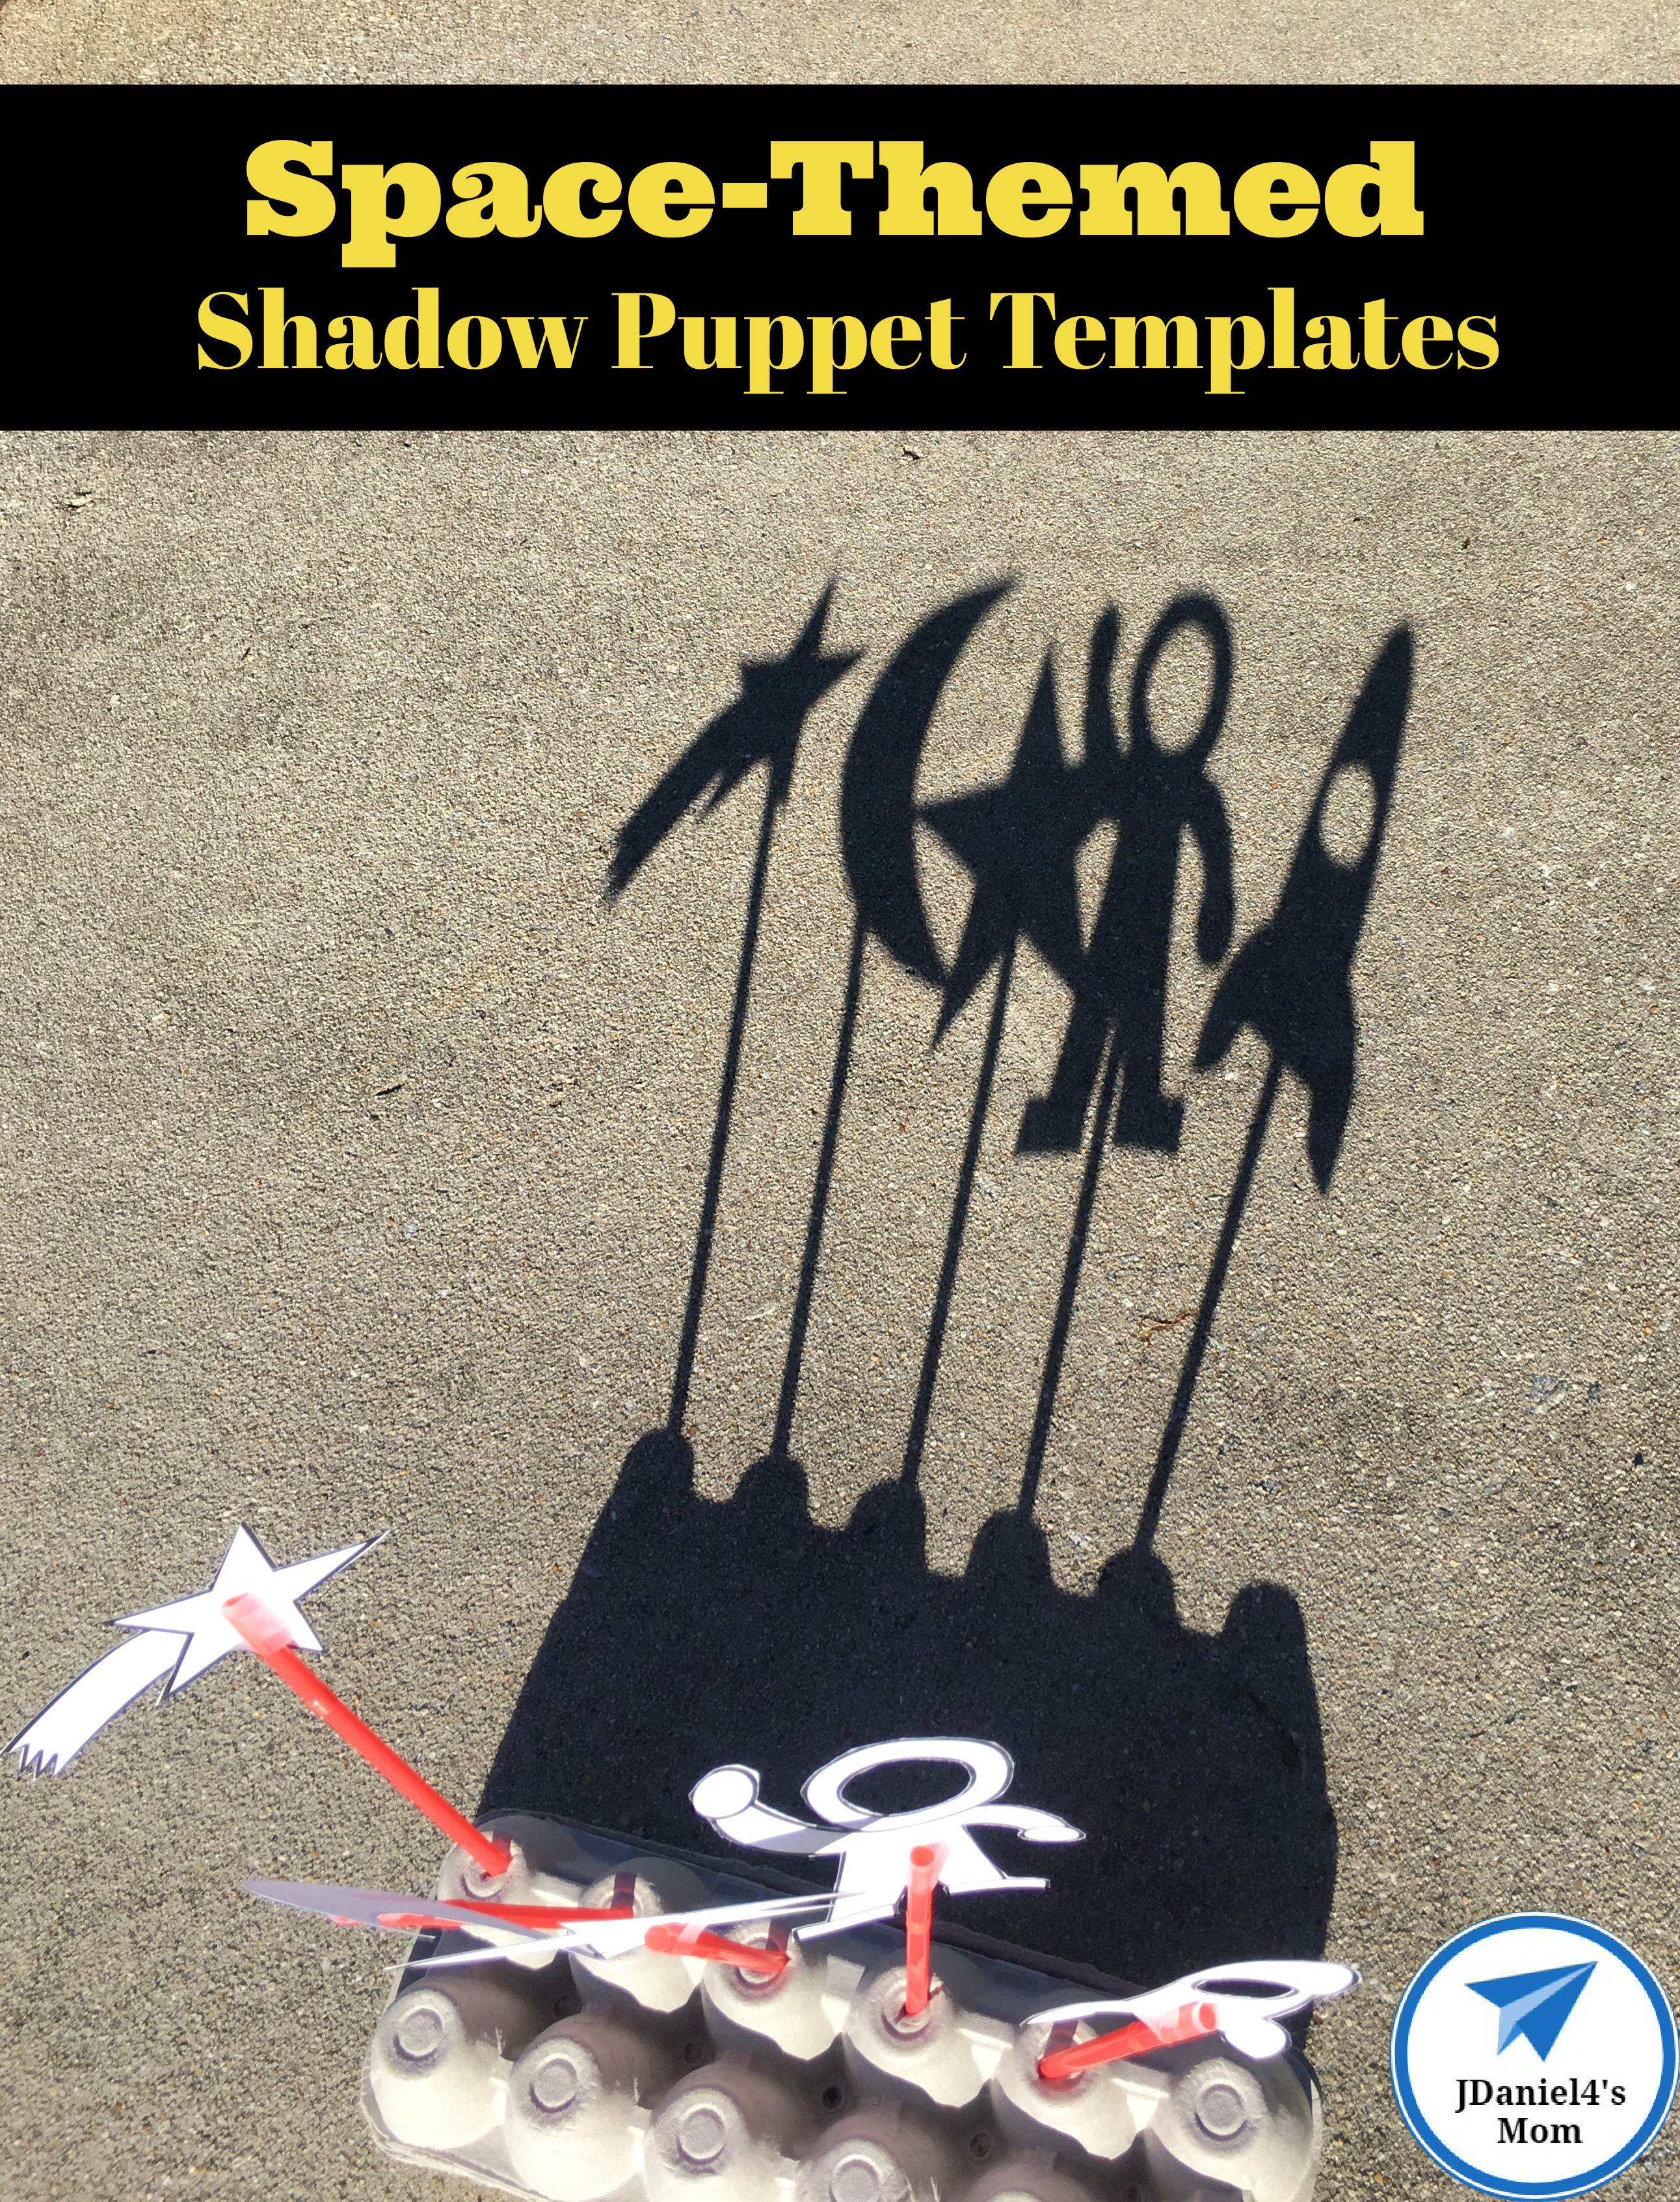 Space-Themed Shadow Puppet Templates